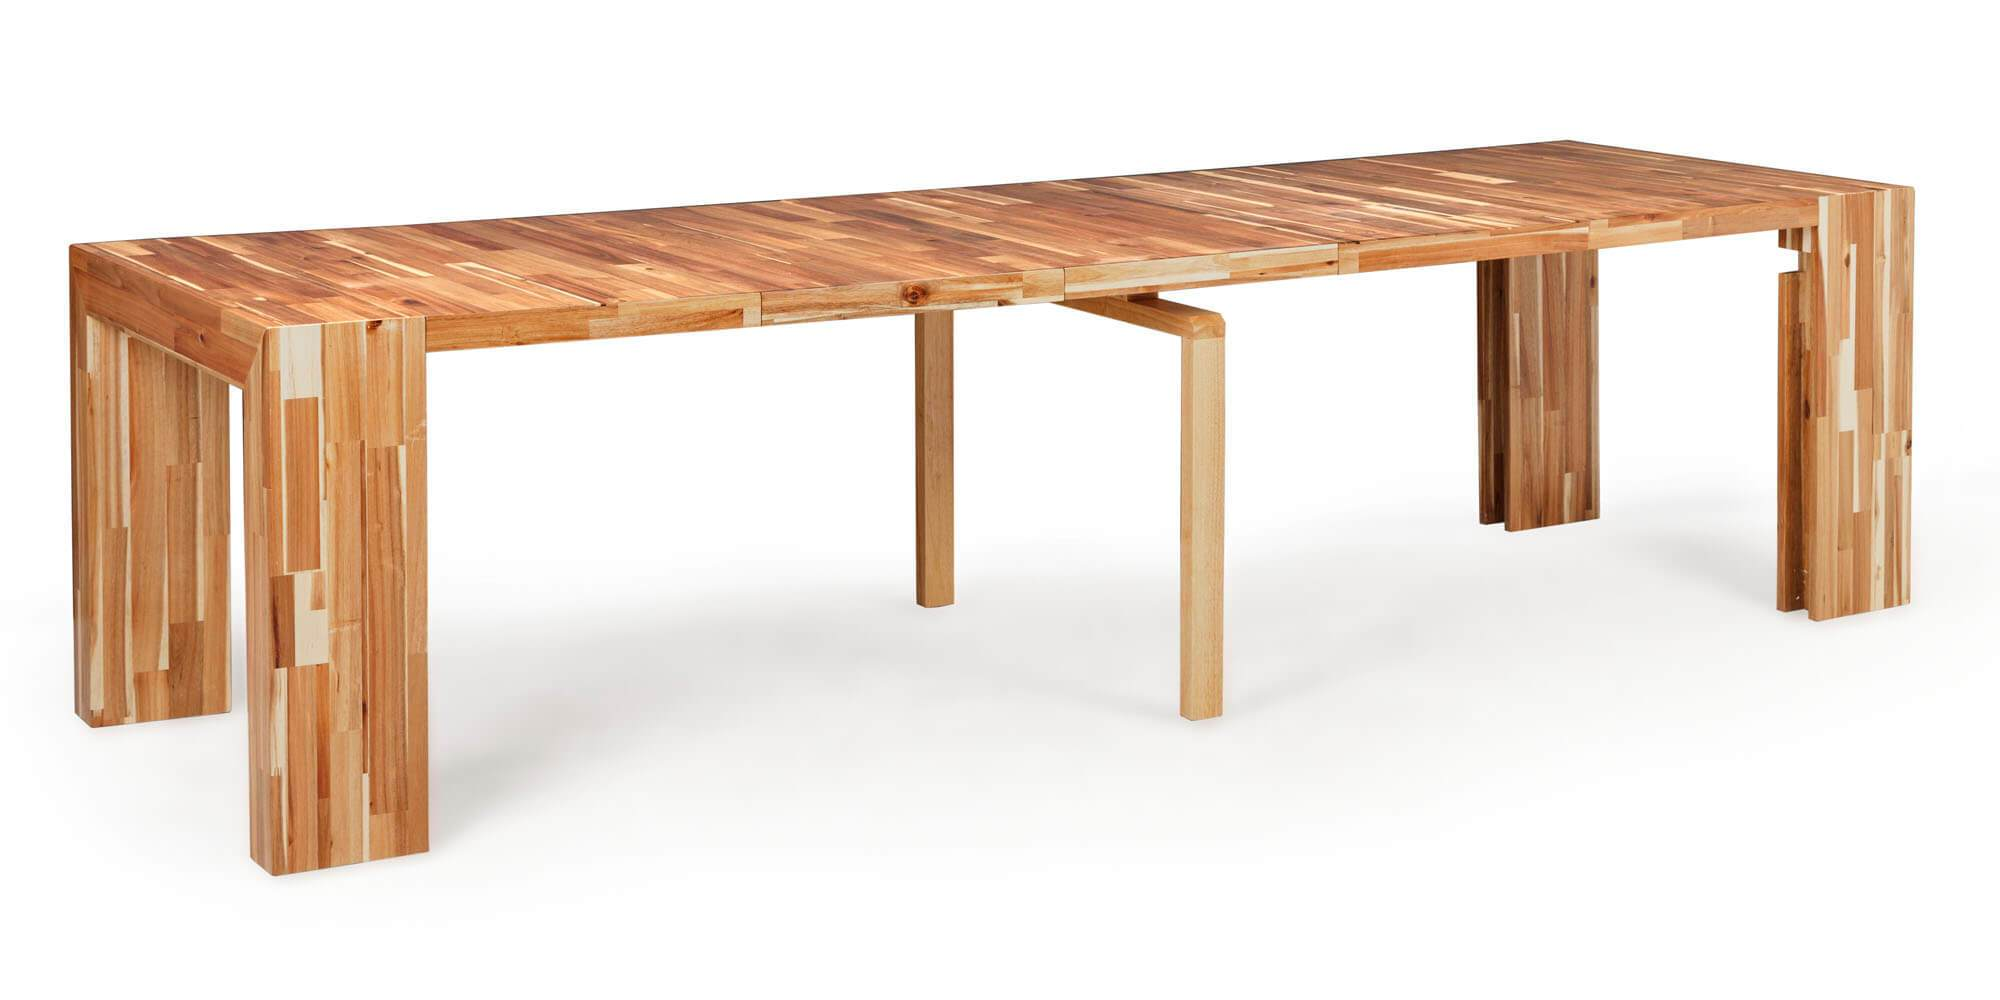 La Table Transformer + Acacia naturel